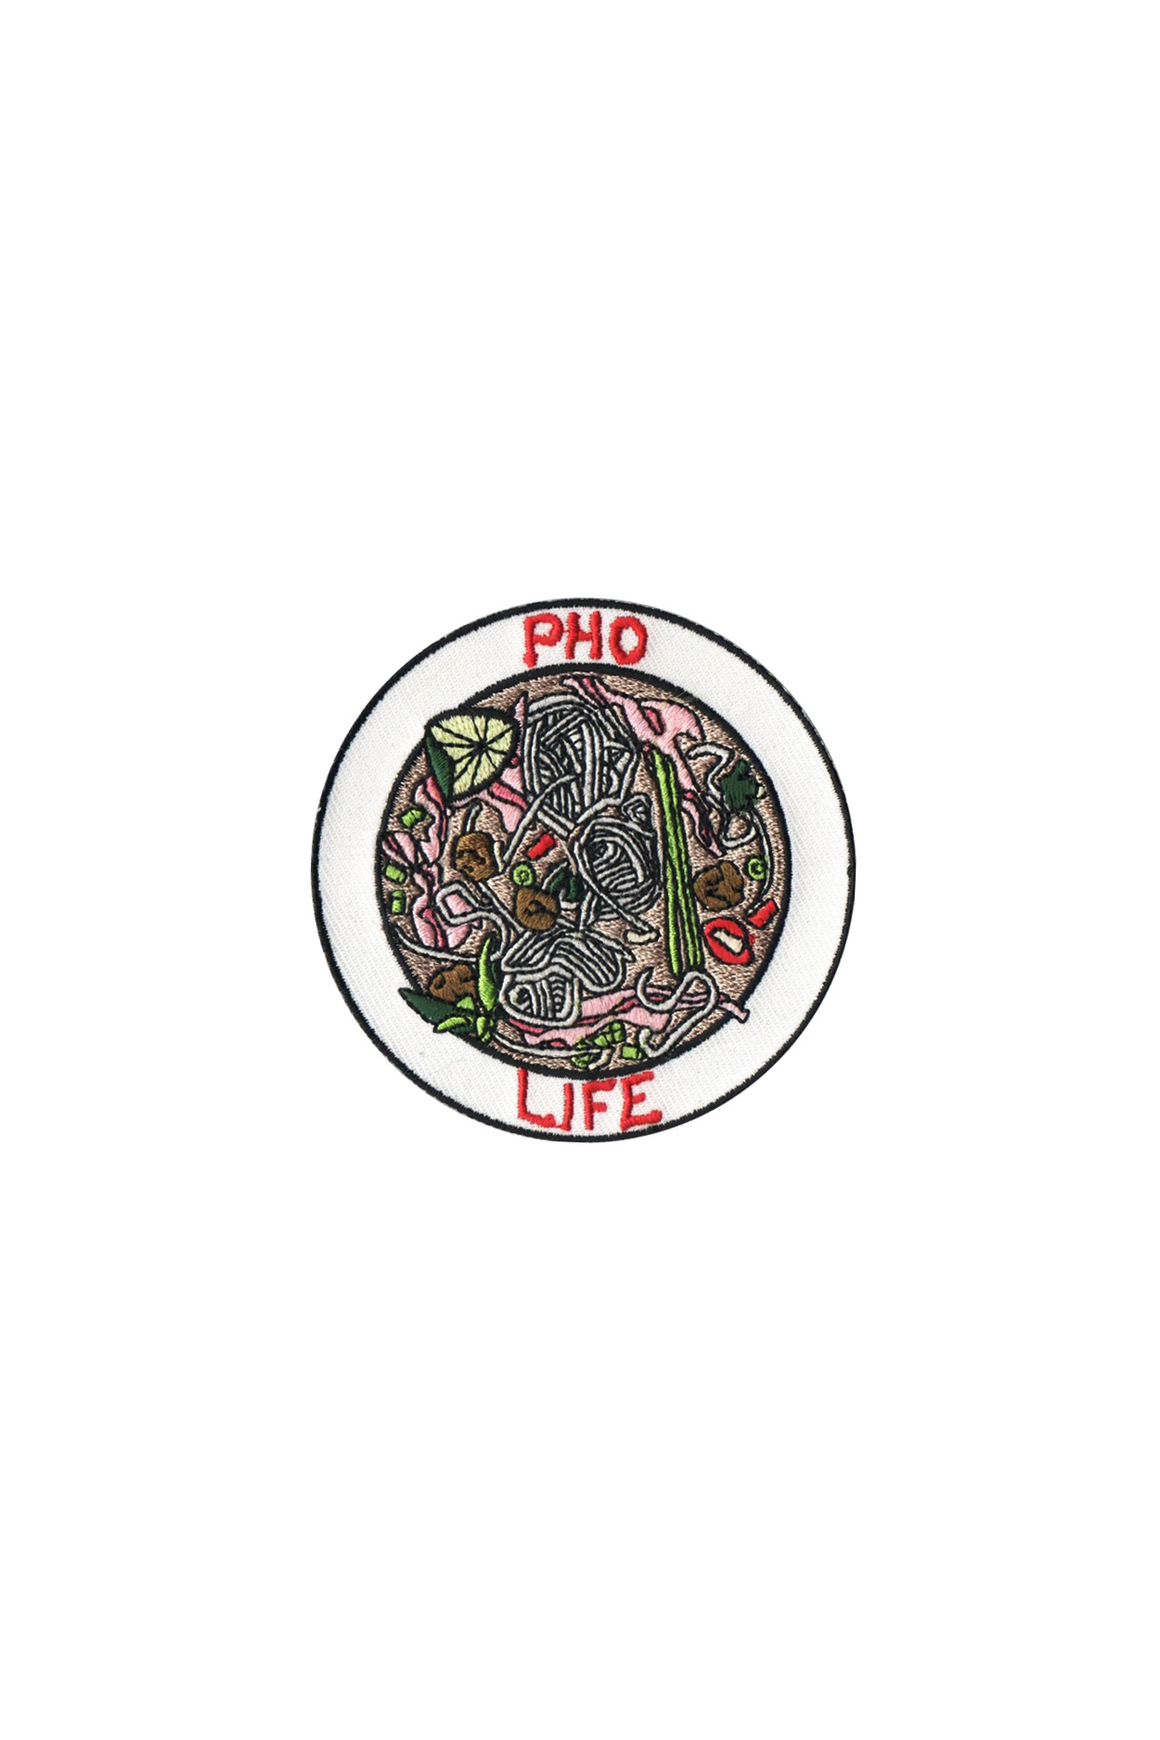 Pho Life Patch - Philistine